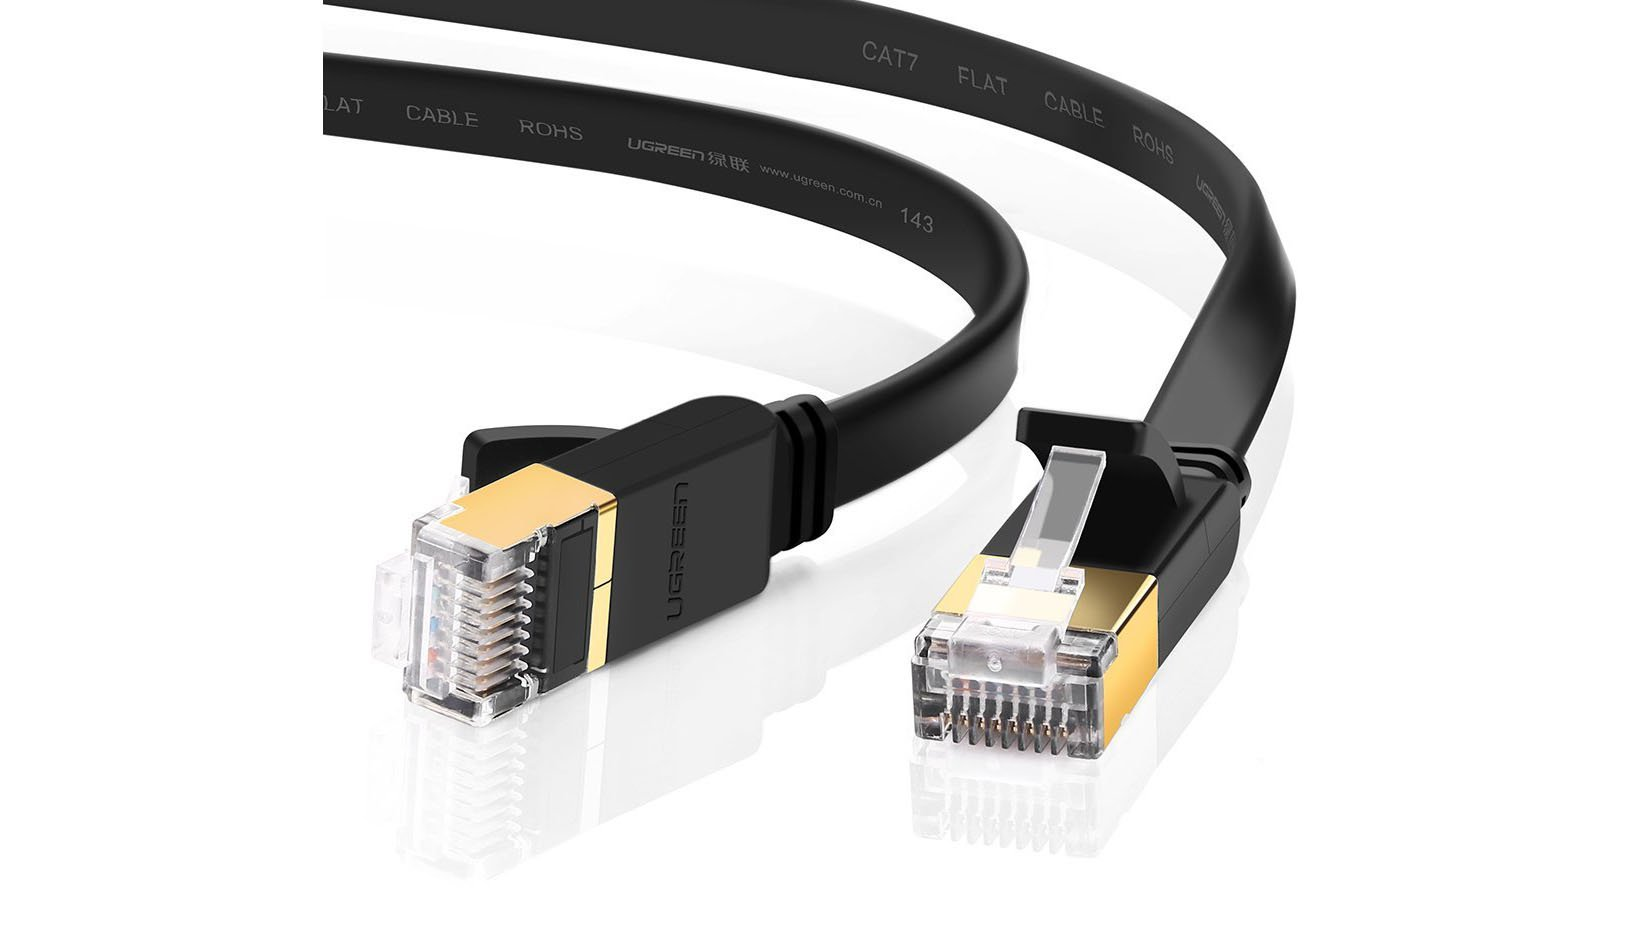 Best Ethernet Cable Fast Tangle Free Networking From Just 3 As Well Cat 6 Crossover Diagram On Cat6 Rj45 Connector Wiring Like The Vandesail This Flat Cat7 Comes In A Range Of Lengths Time Going All Way Up To 20m It Has Copper Shielded Twisted Pair